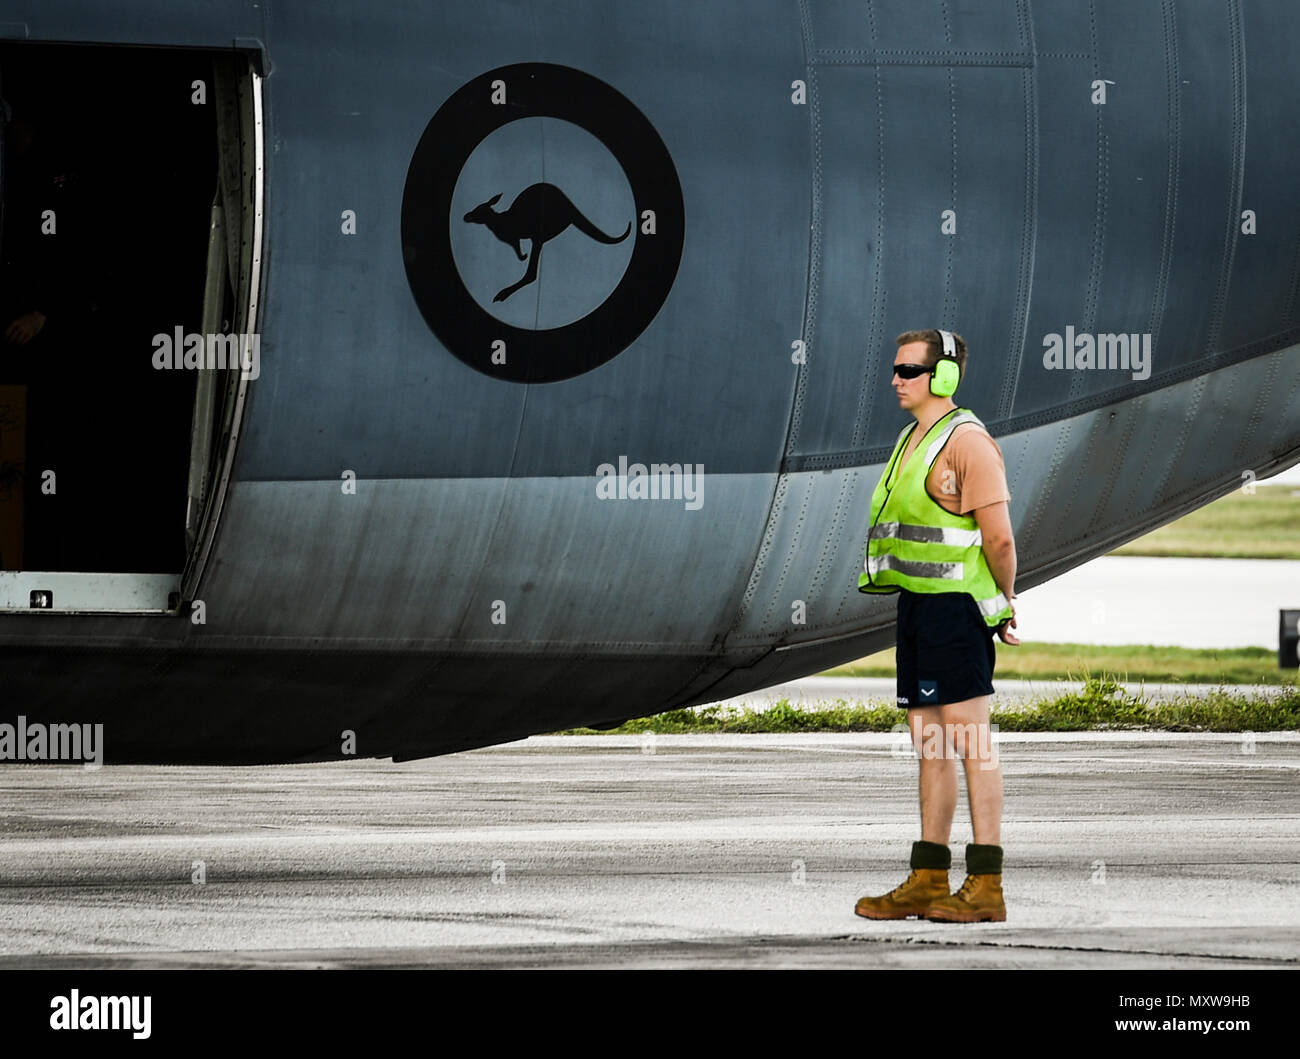 A maintainer with the Royal Australian Air Force waits to marshal a C-130J Super Hercules for takeoff during Operation Christmas Drop at Andersen Air Force Base, Guam, Dec. 7, 2016. The RAAF sent a C-130J to OCD to train with the 36th Airlift Squadron and the Japan Self Defense Force, helping participants understand each other's techniques and giving them a chance to offer each other insight. Bilateral training improves participants's abilities to work together during real world scenarios, such as delivering disaster relief supplies.(U.S. Air Force photo by Senior Airman Elizabeth Baker/Releas - Stock Image